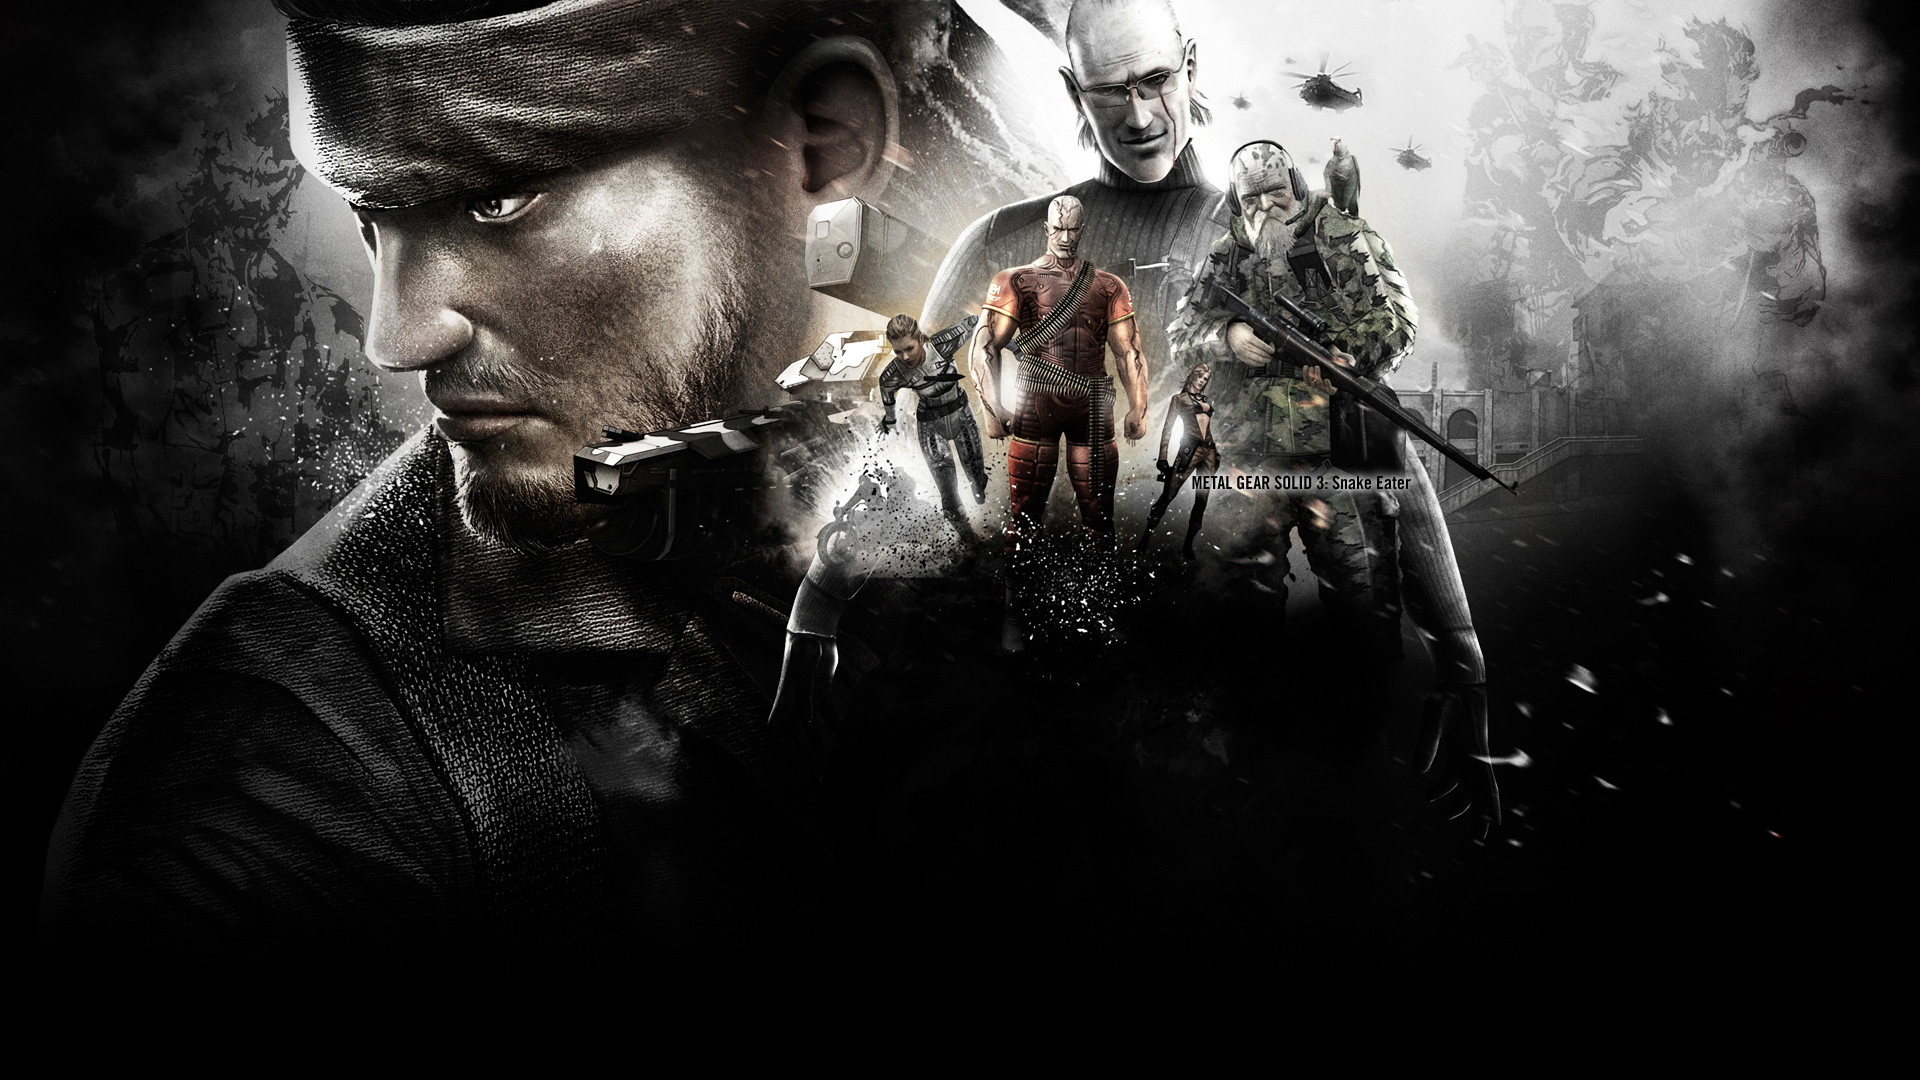 Metal Gear Solid Wallpaper Hd Wallpapertag